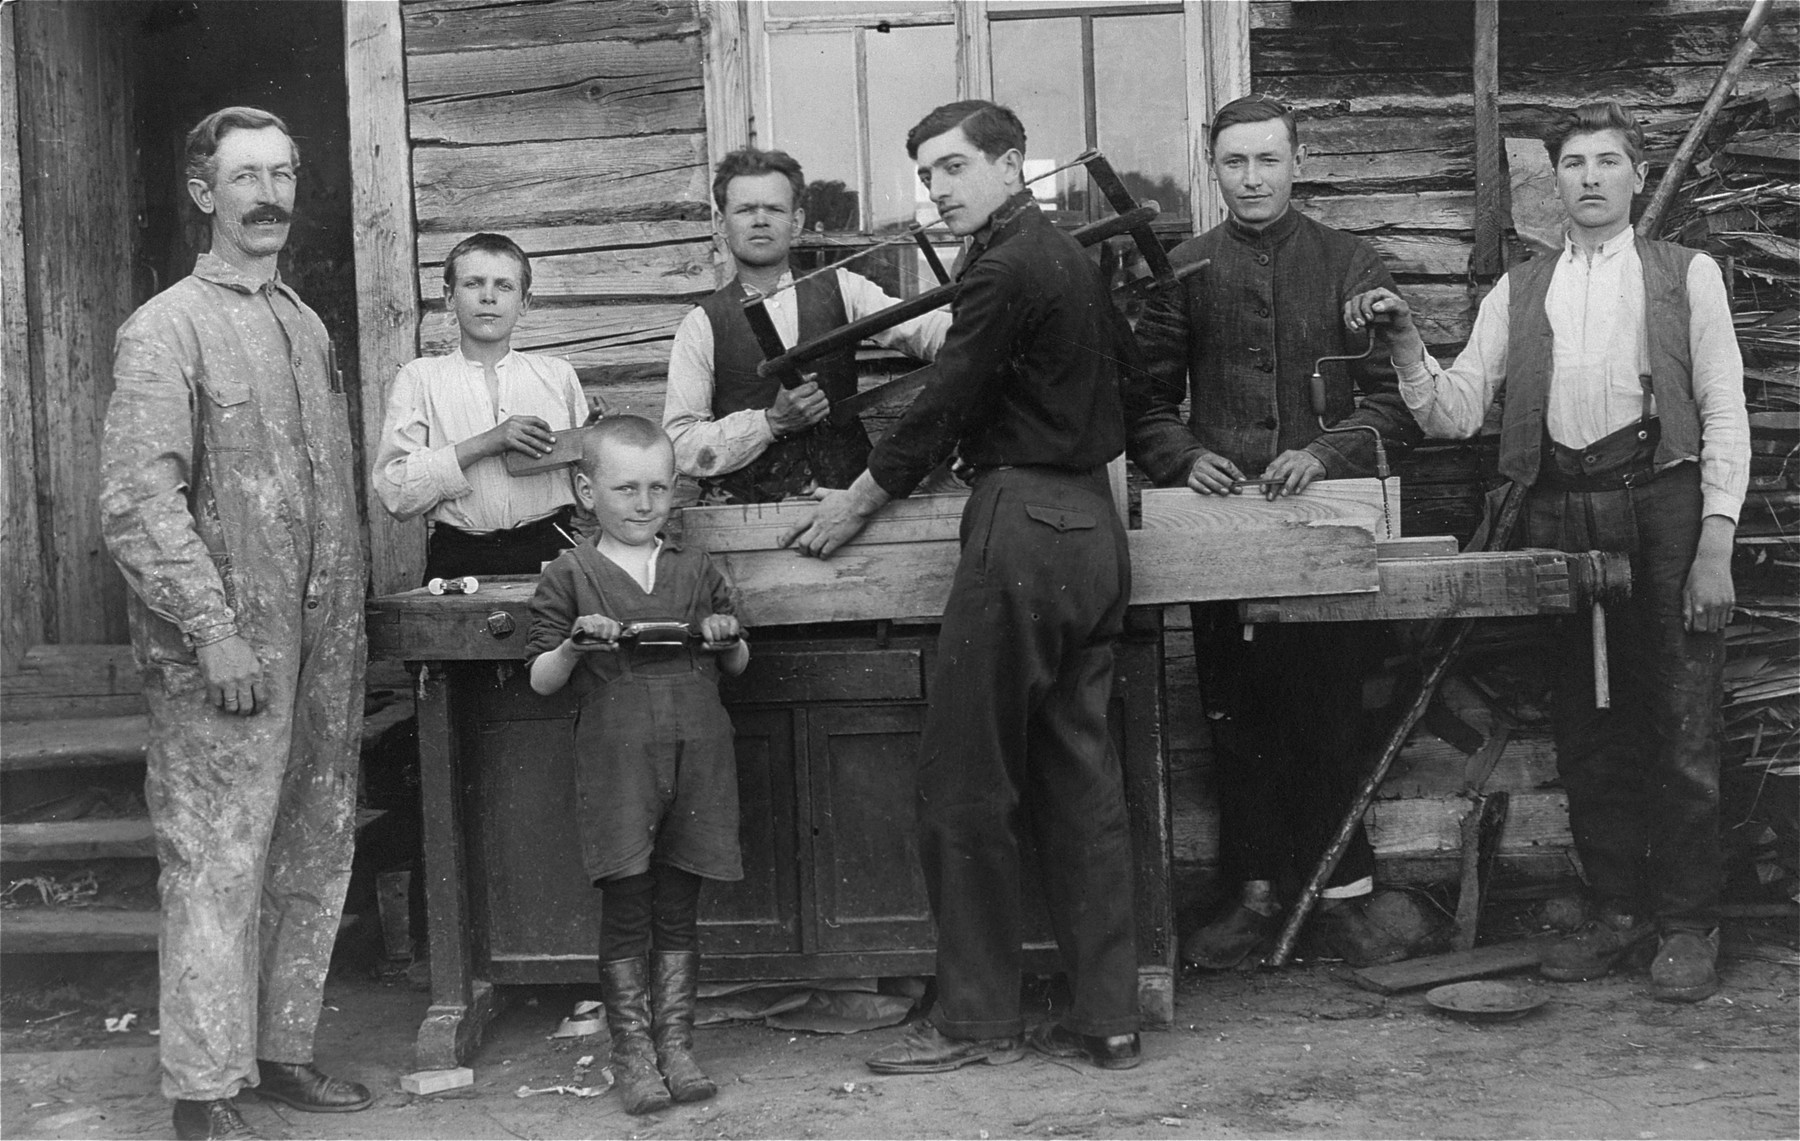 Members of a hachshara (Zionist collective) in Lithuania learn carpentry.  Pictured in the center is Eliezer Kaplan.